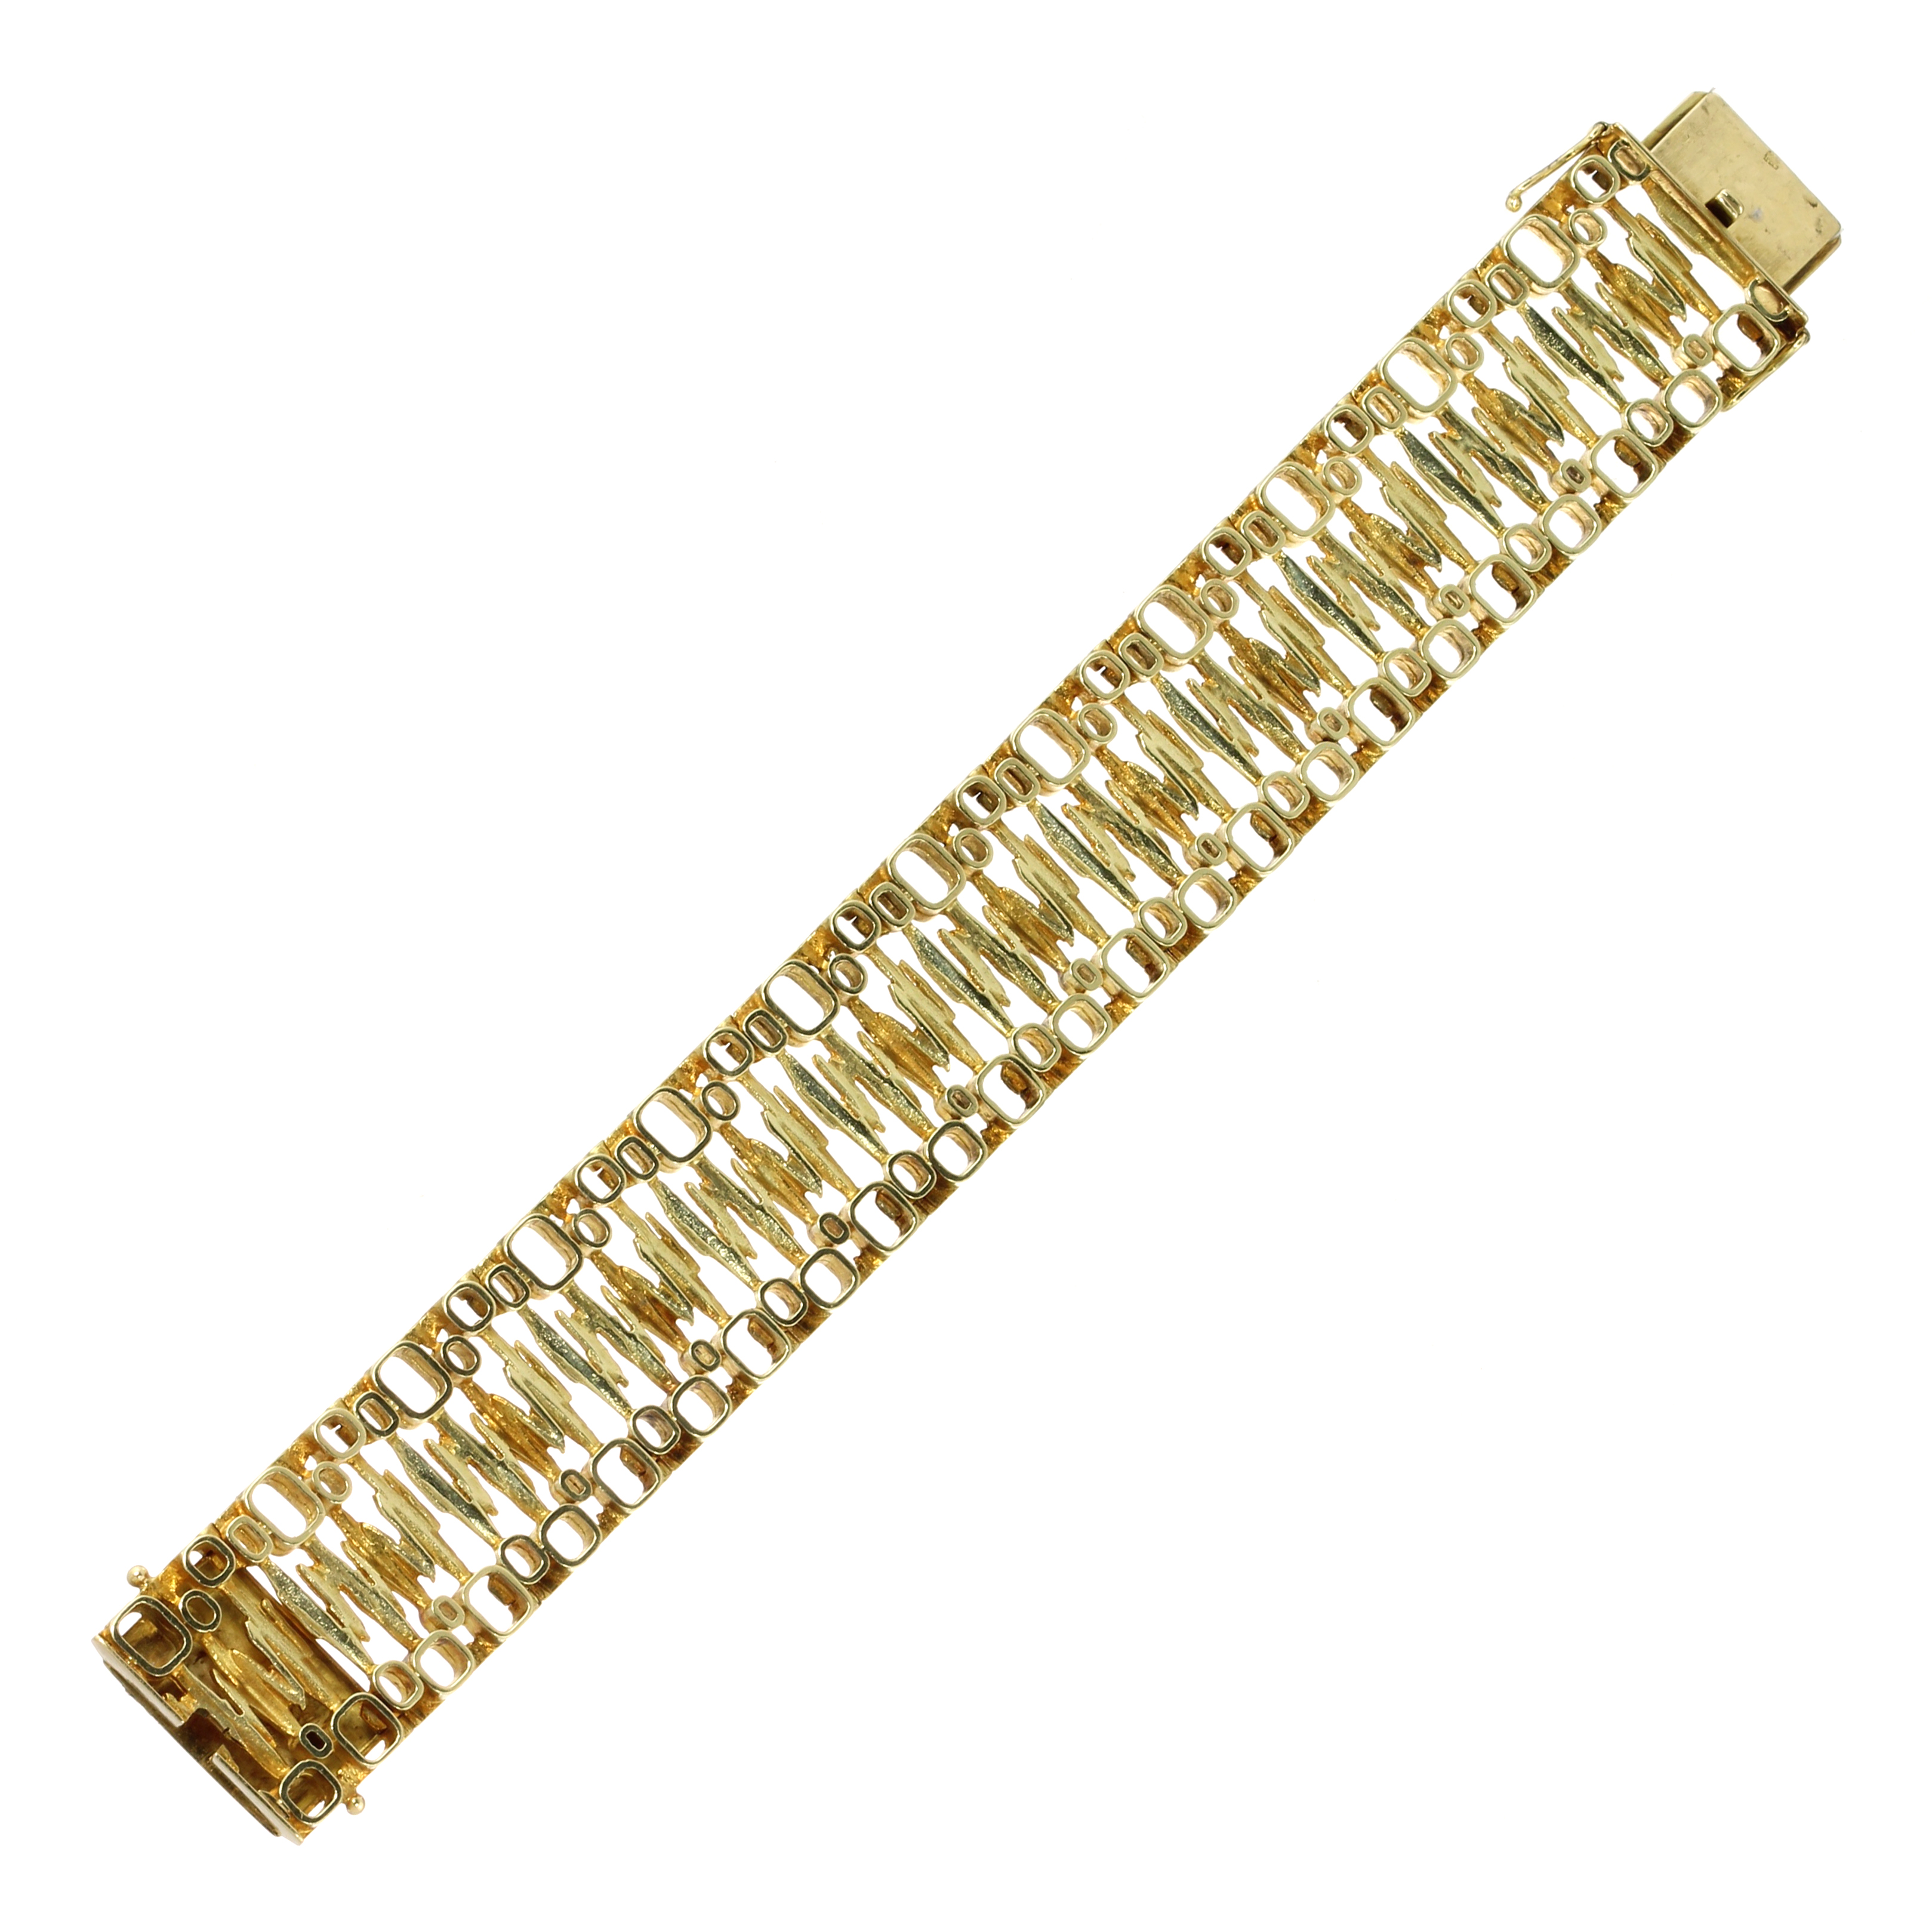 Los 7 - A FANCY LINK GOLD BRACELET, CIRCA 1970 in high carat yellow gold comprising links of various